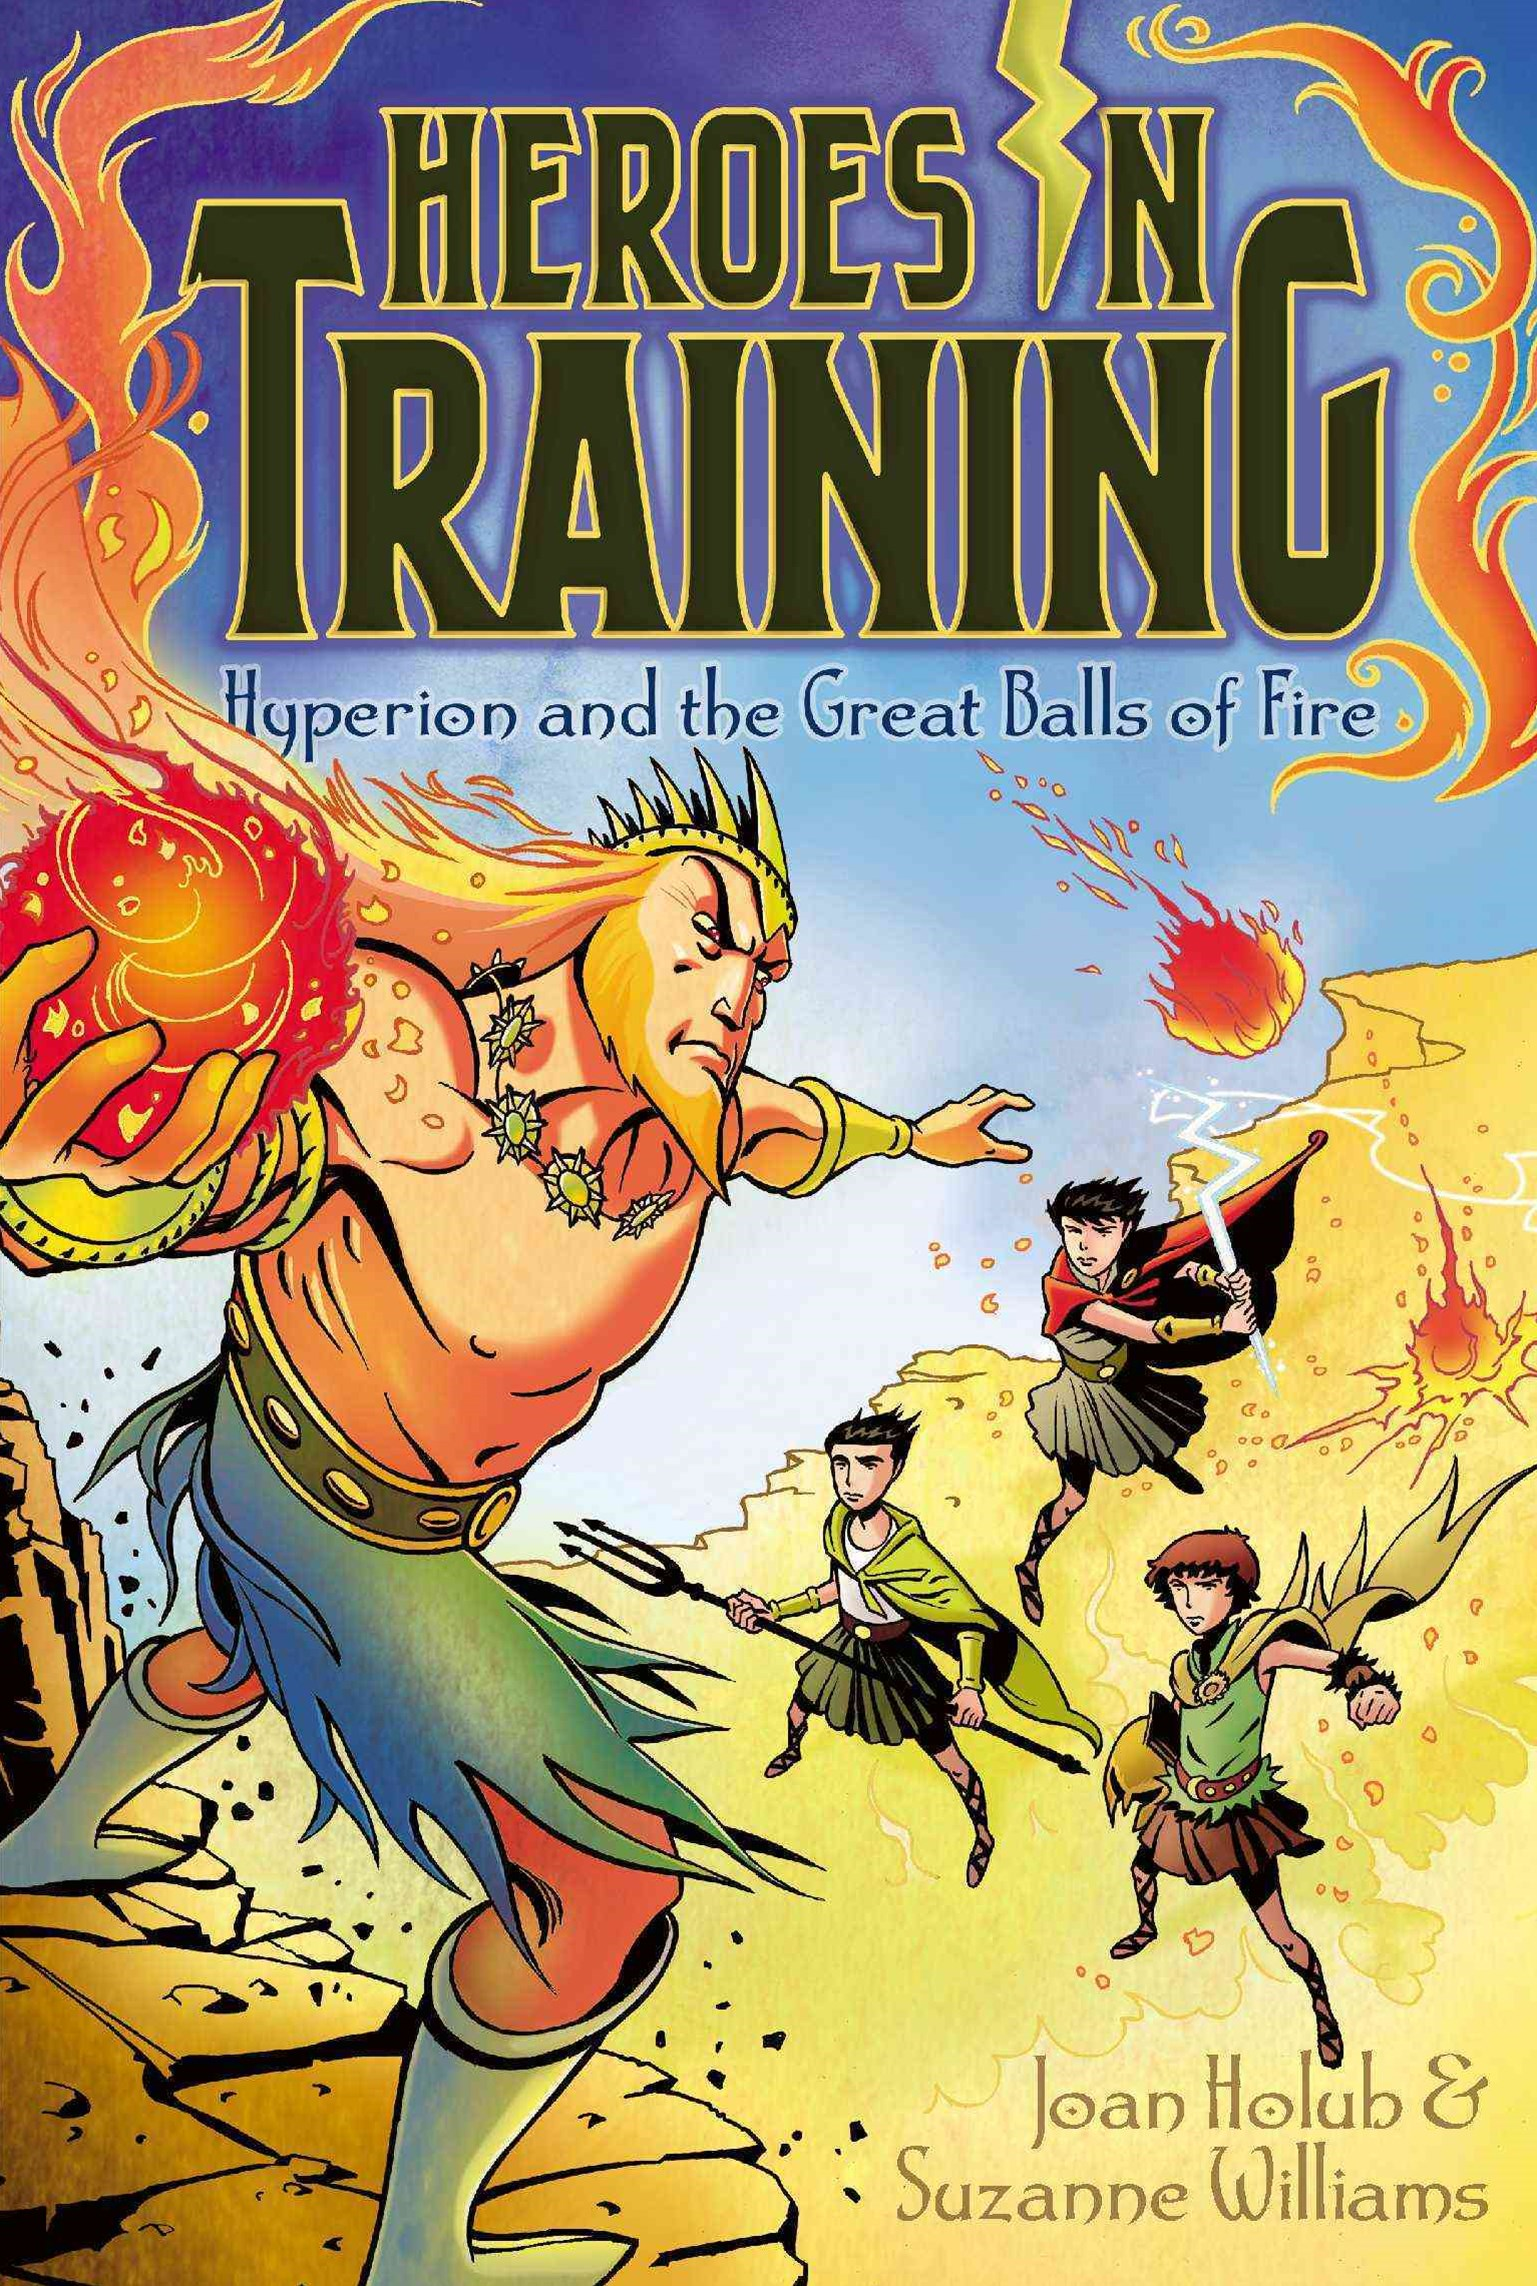 Heroes in Training #4: Hyperion and the Great Balls of Fire